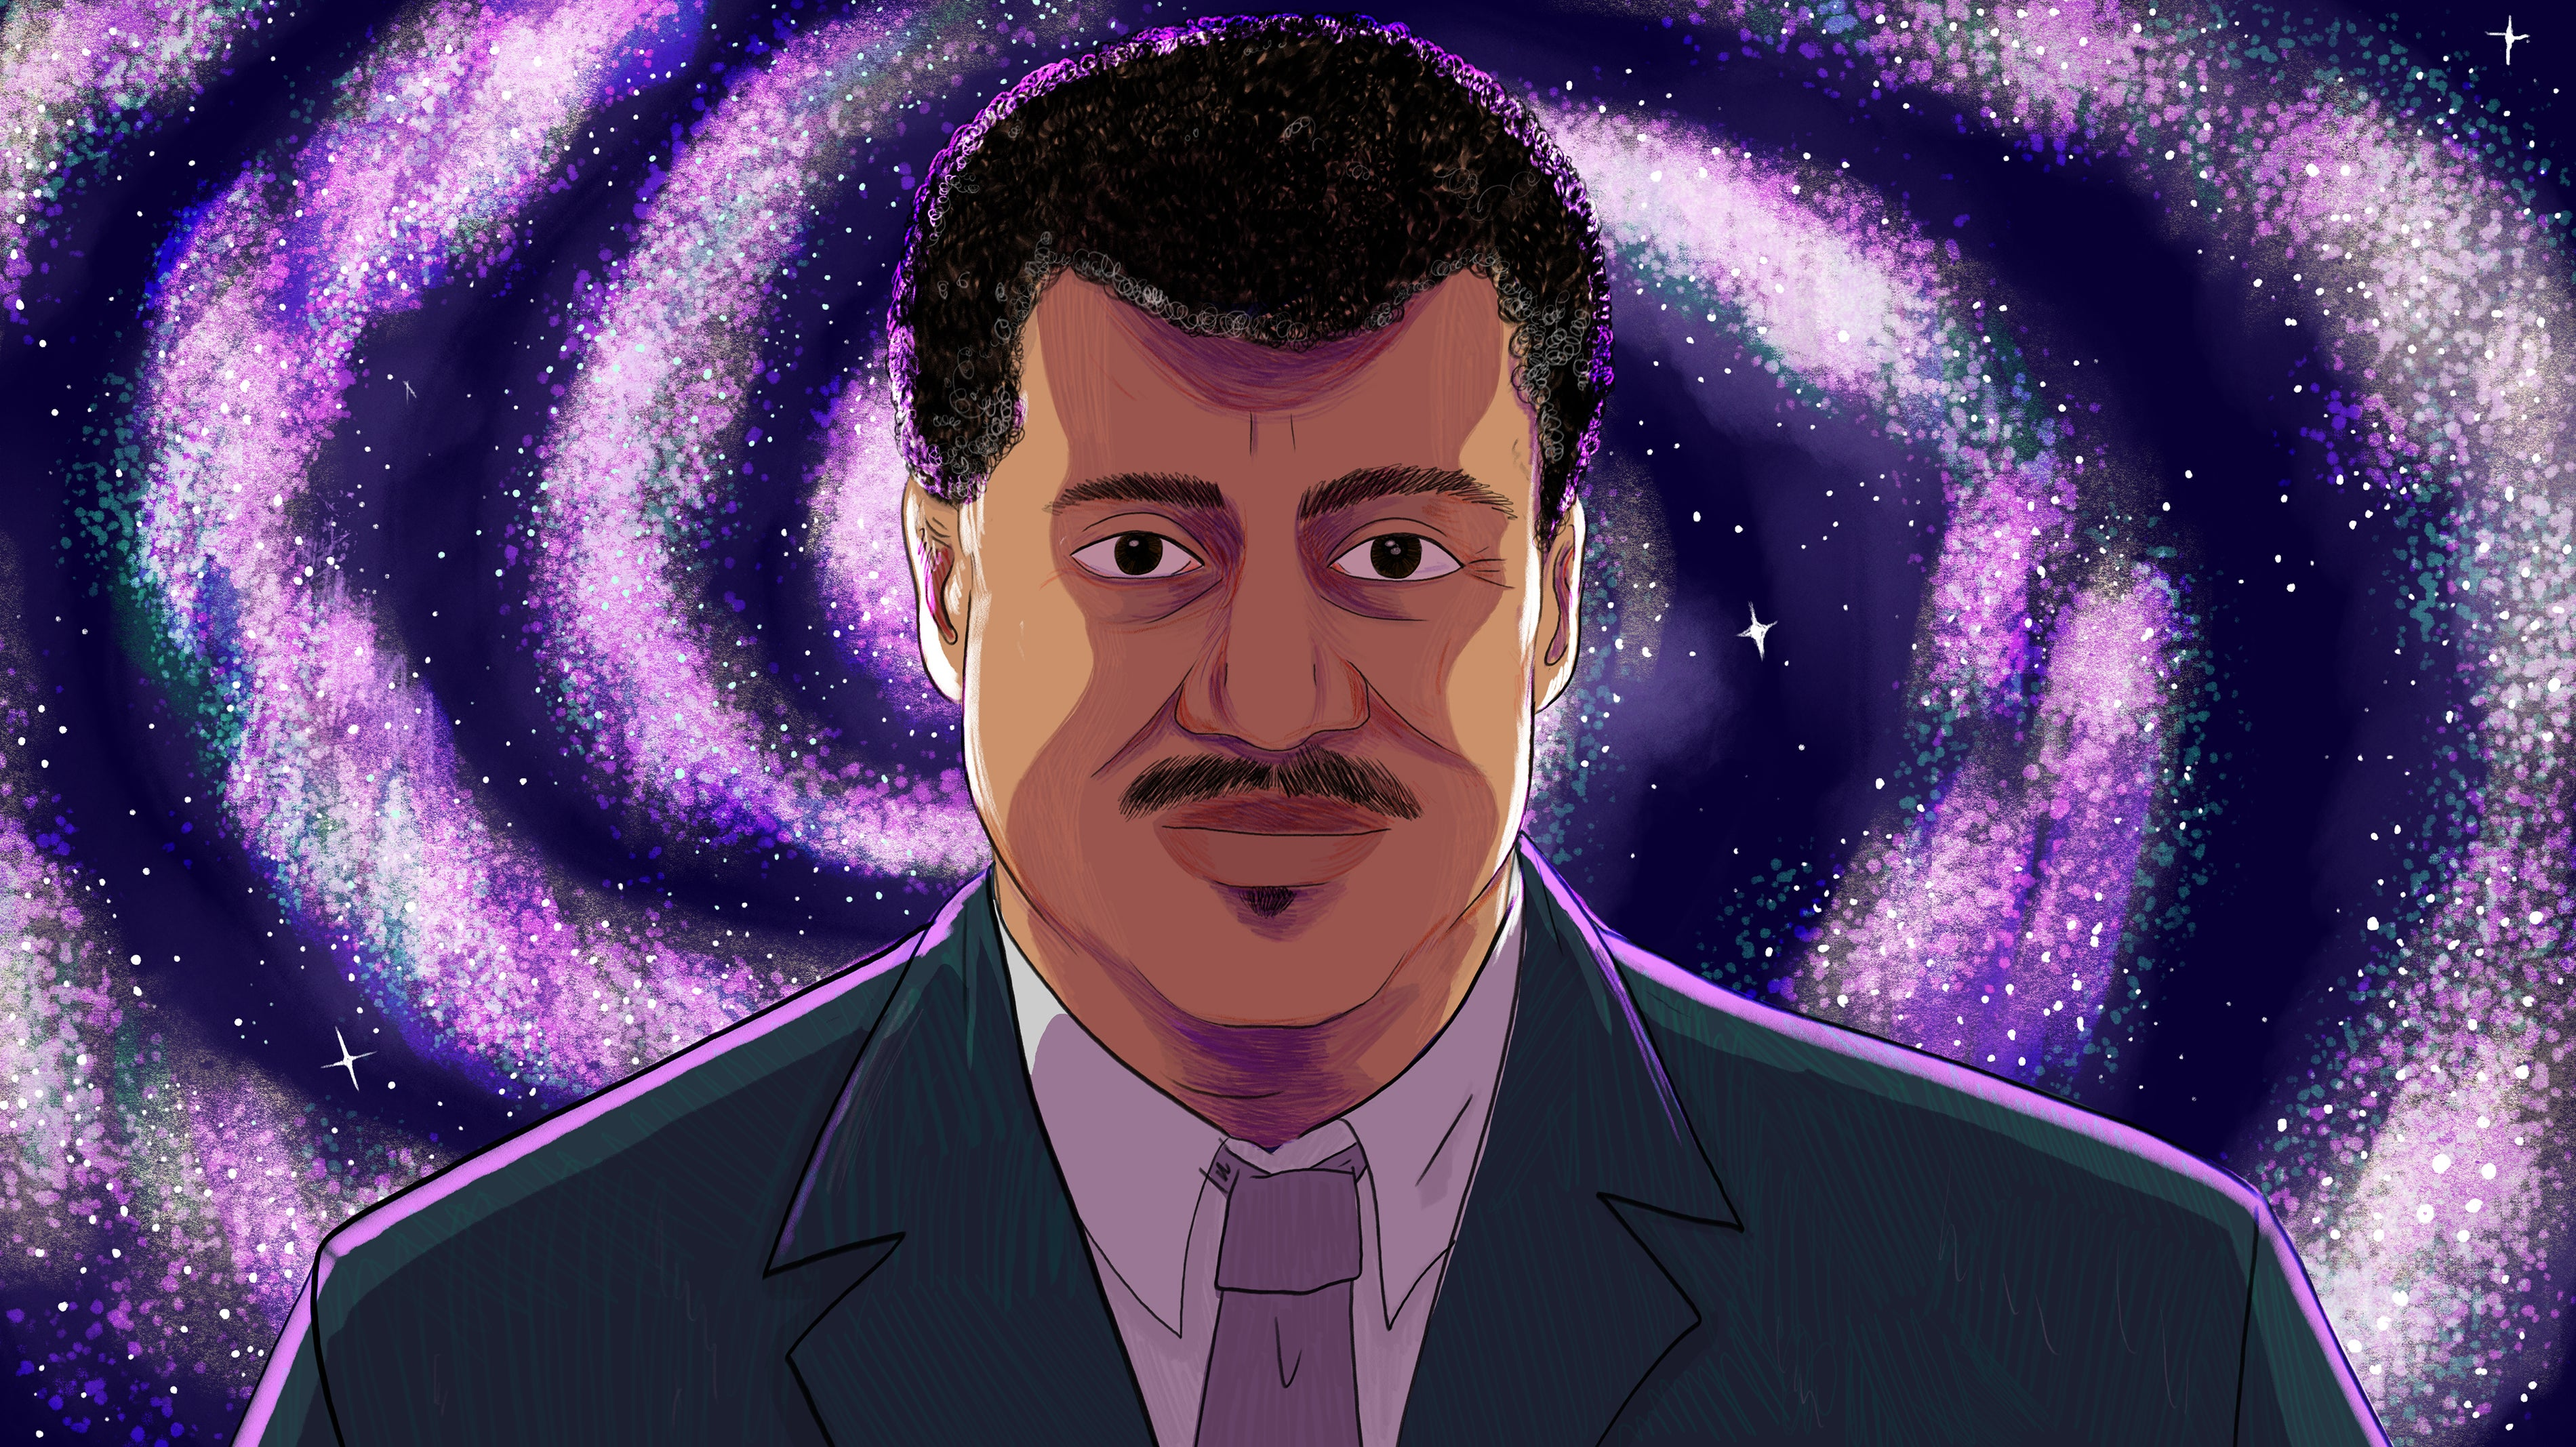 I Watched Neil DeGrasse Tyson Take On A Science Sceptic